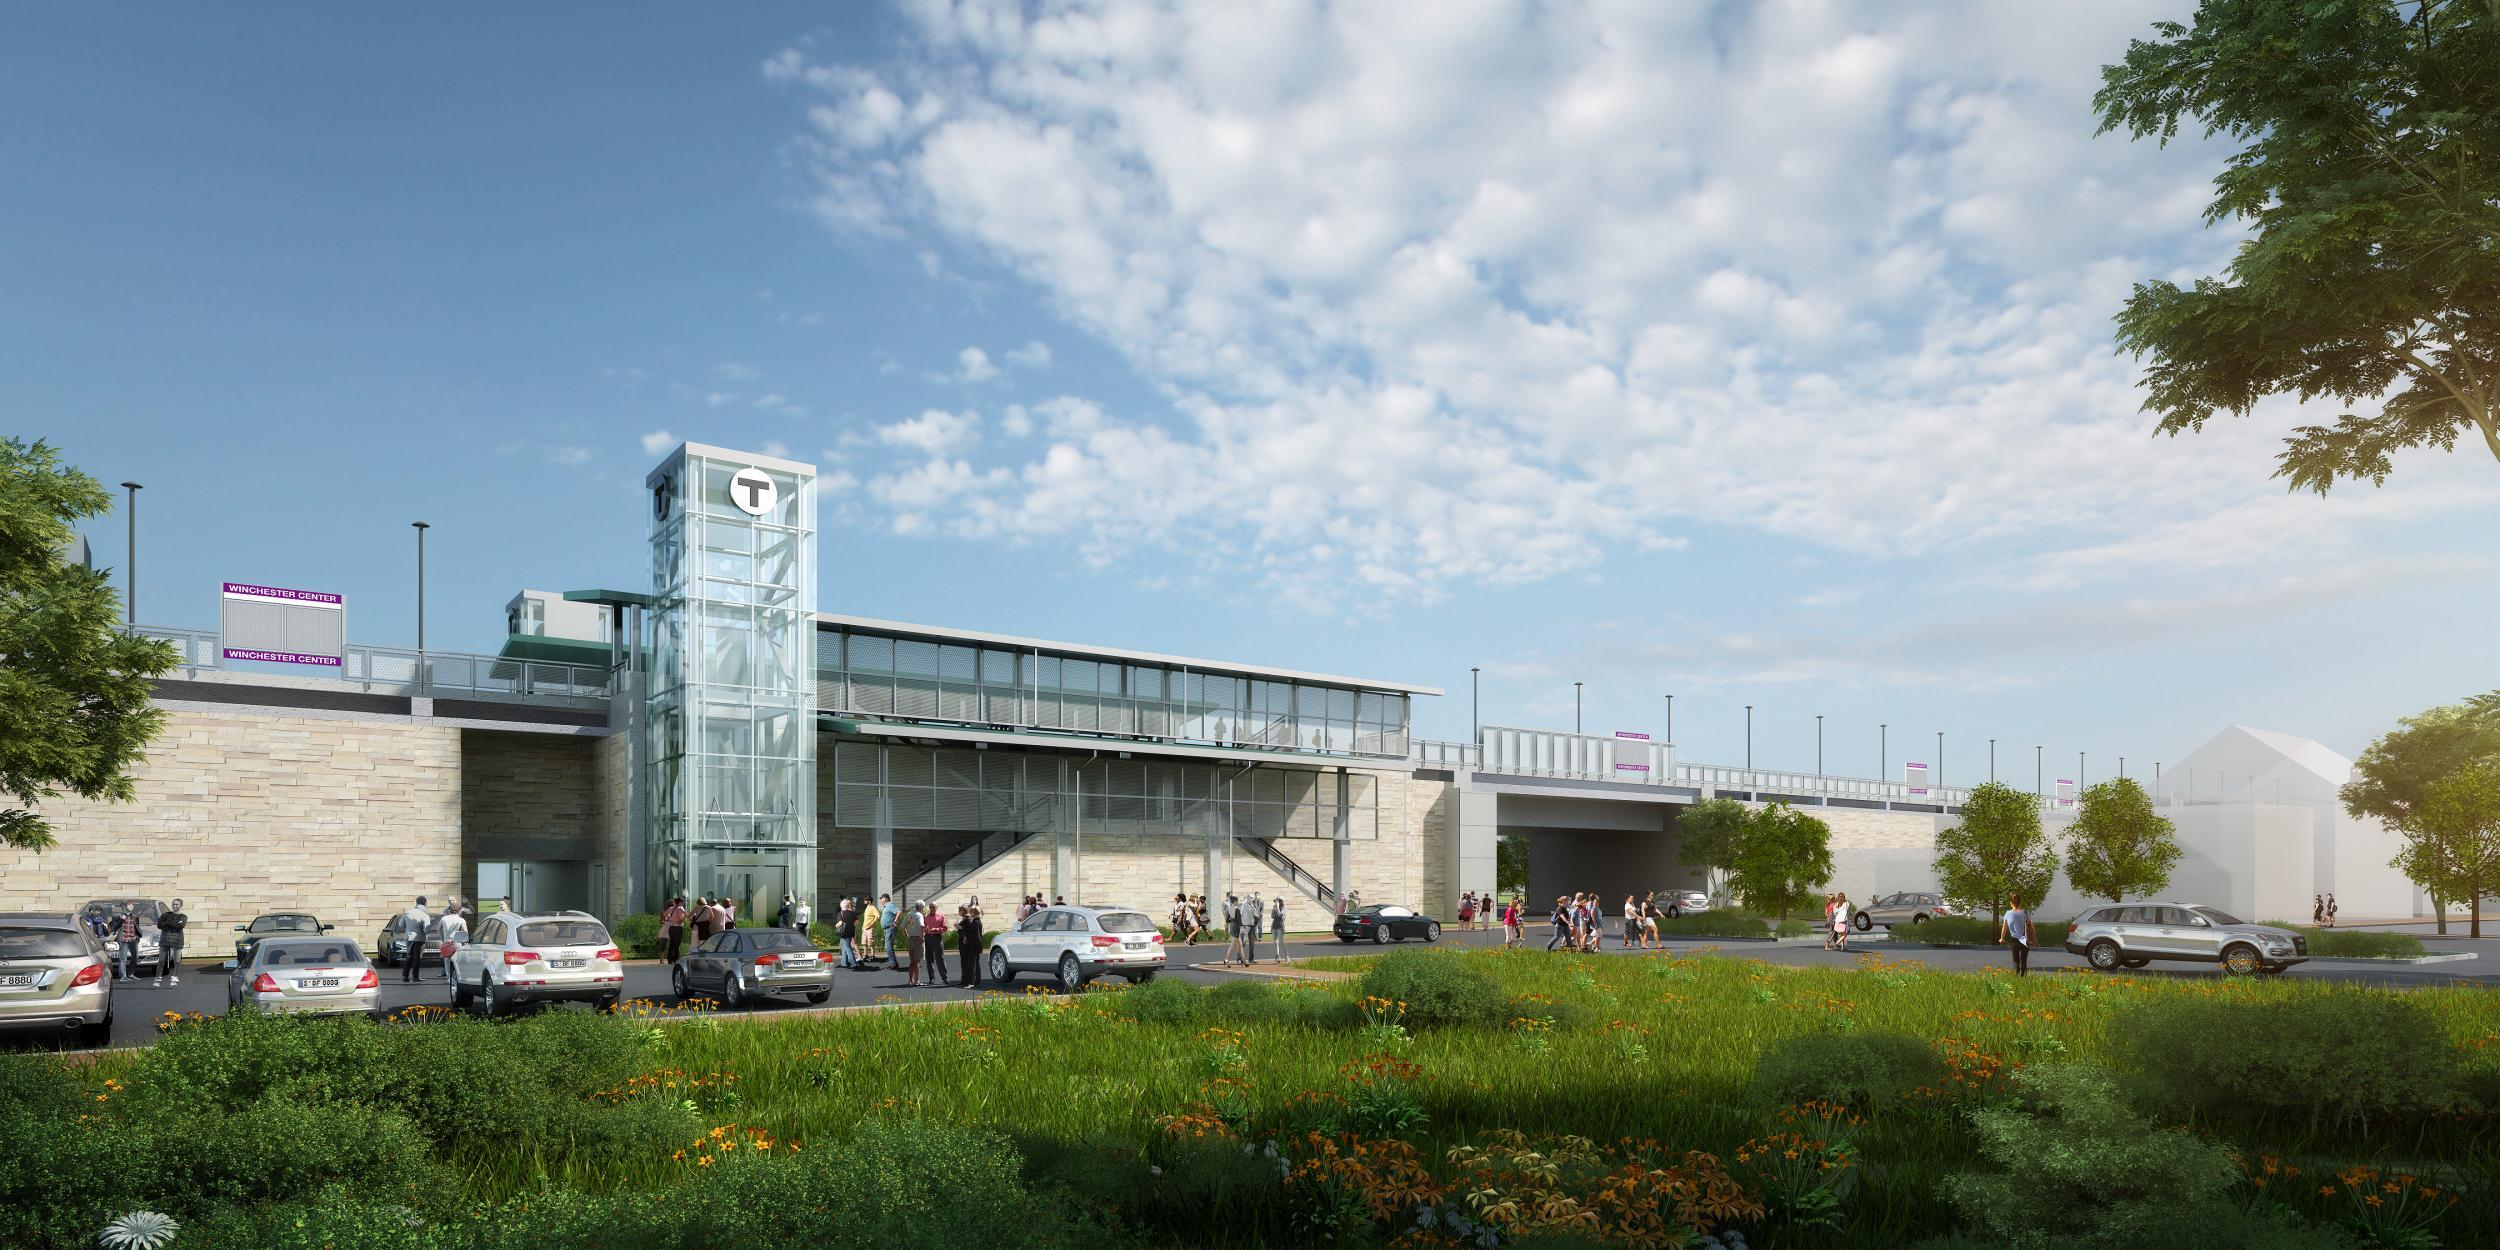 A rendering shows what Winchester Station will look like after accessibility improvements, with a new elevator, station signage, people in the parking lot, as viewed from the from the Aberjona parking lot.